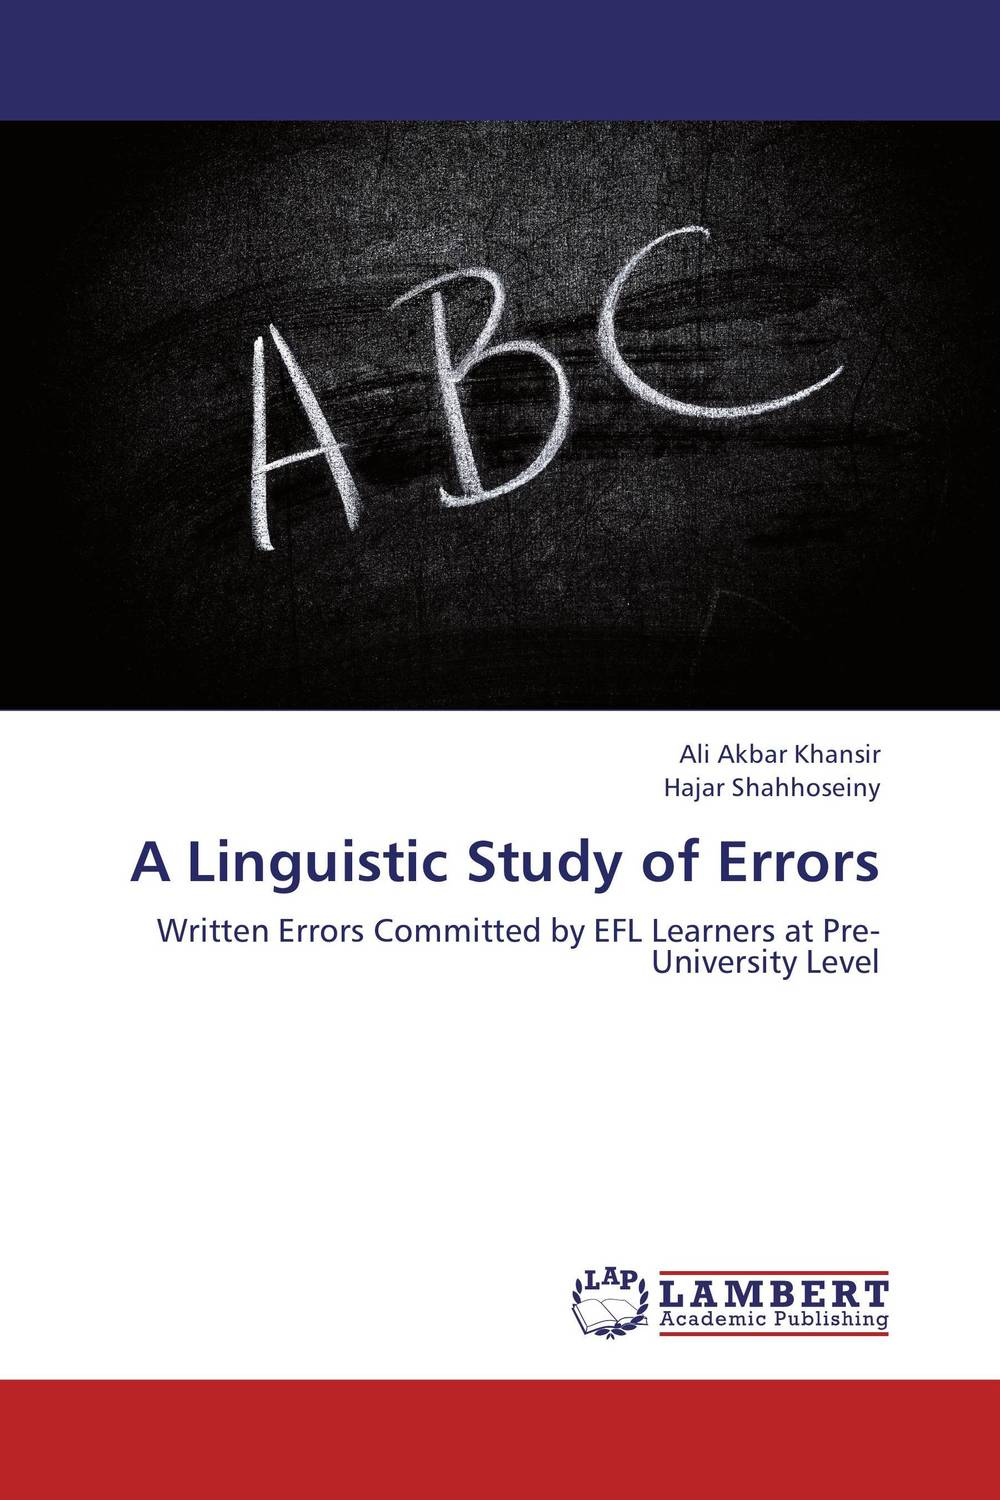 A Linguistic Study of Errors english teachers' attitudes in acquiring grammatical competence